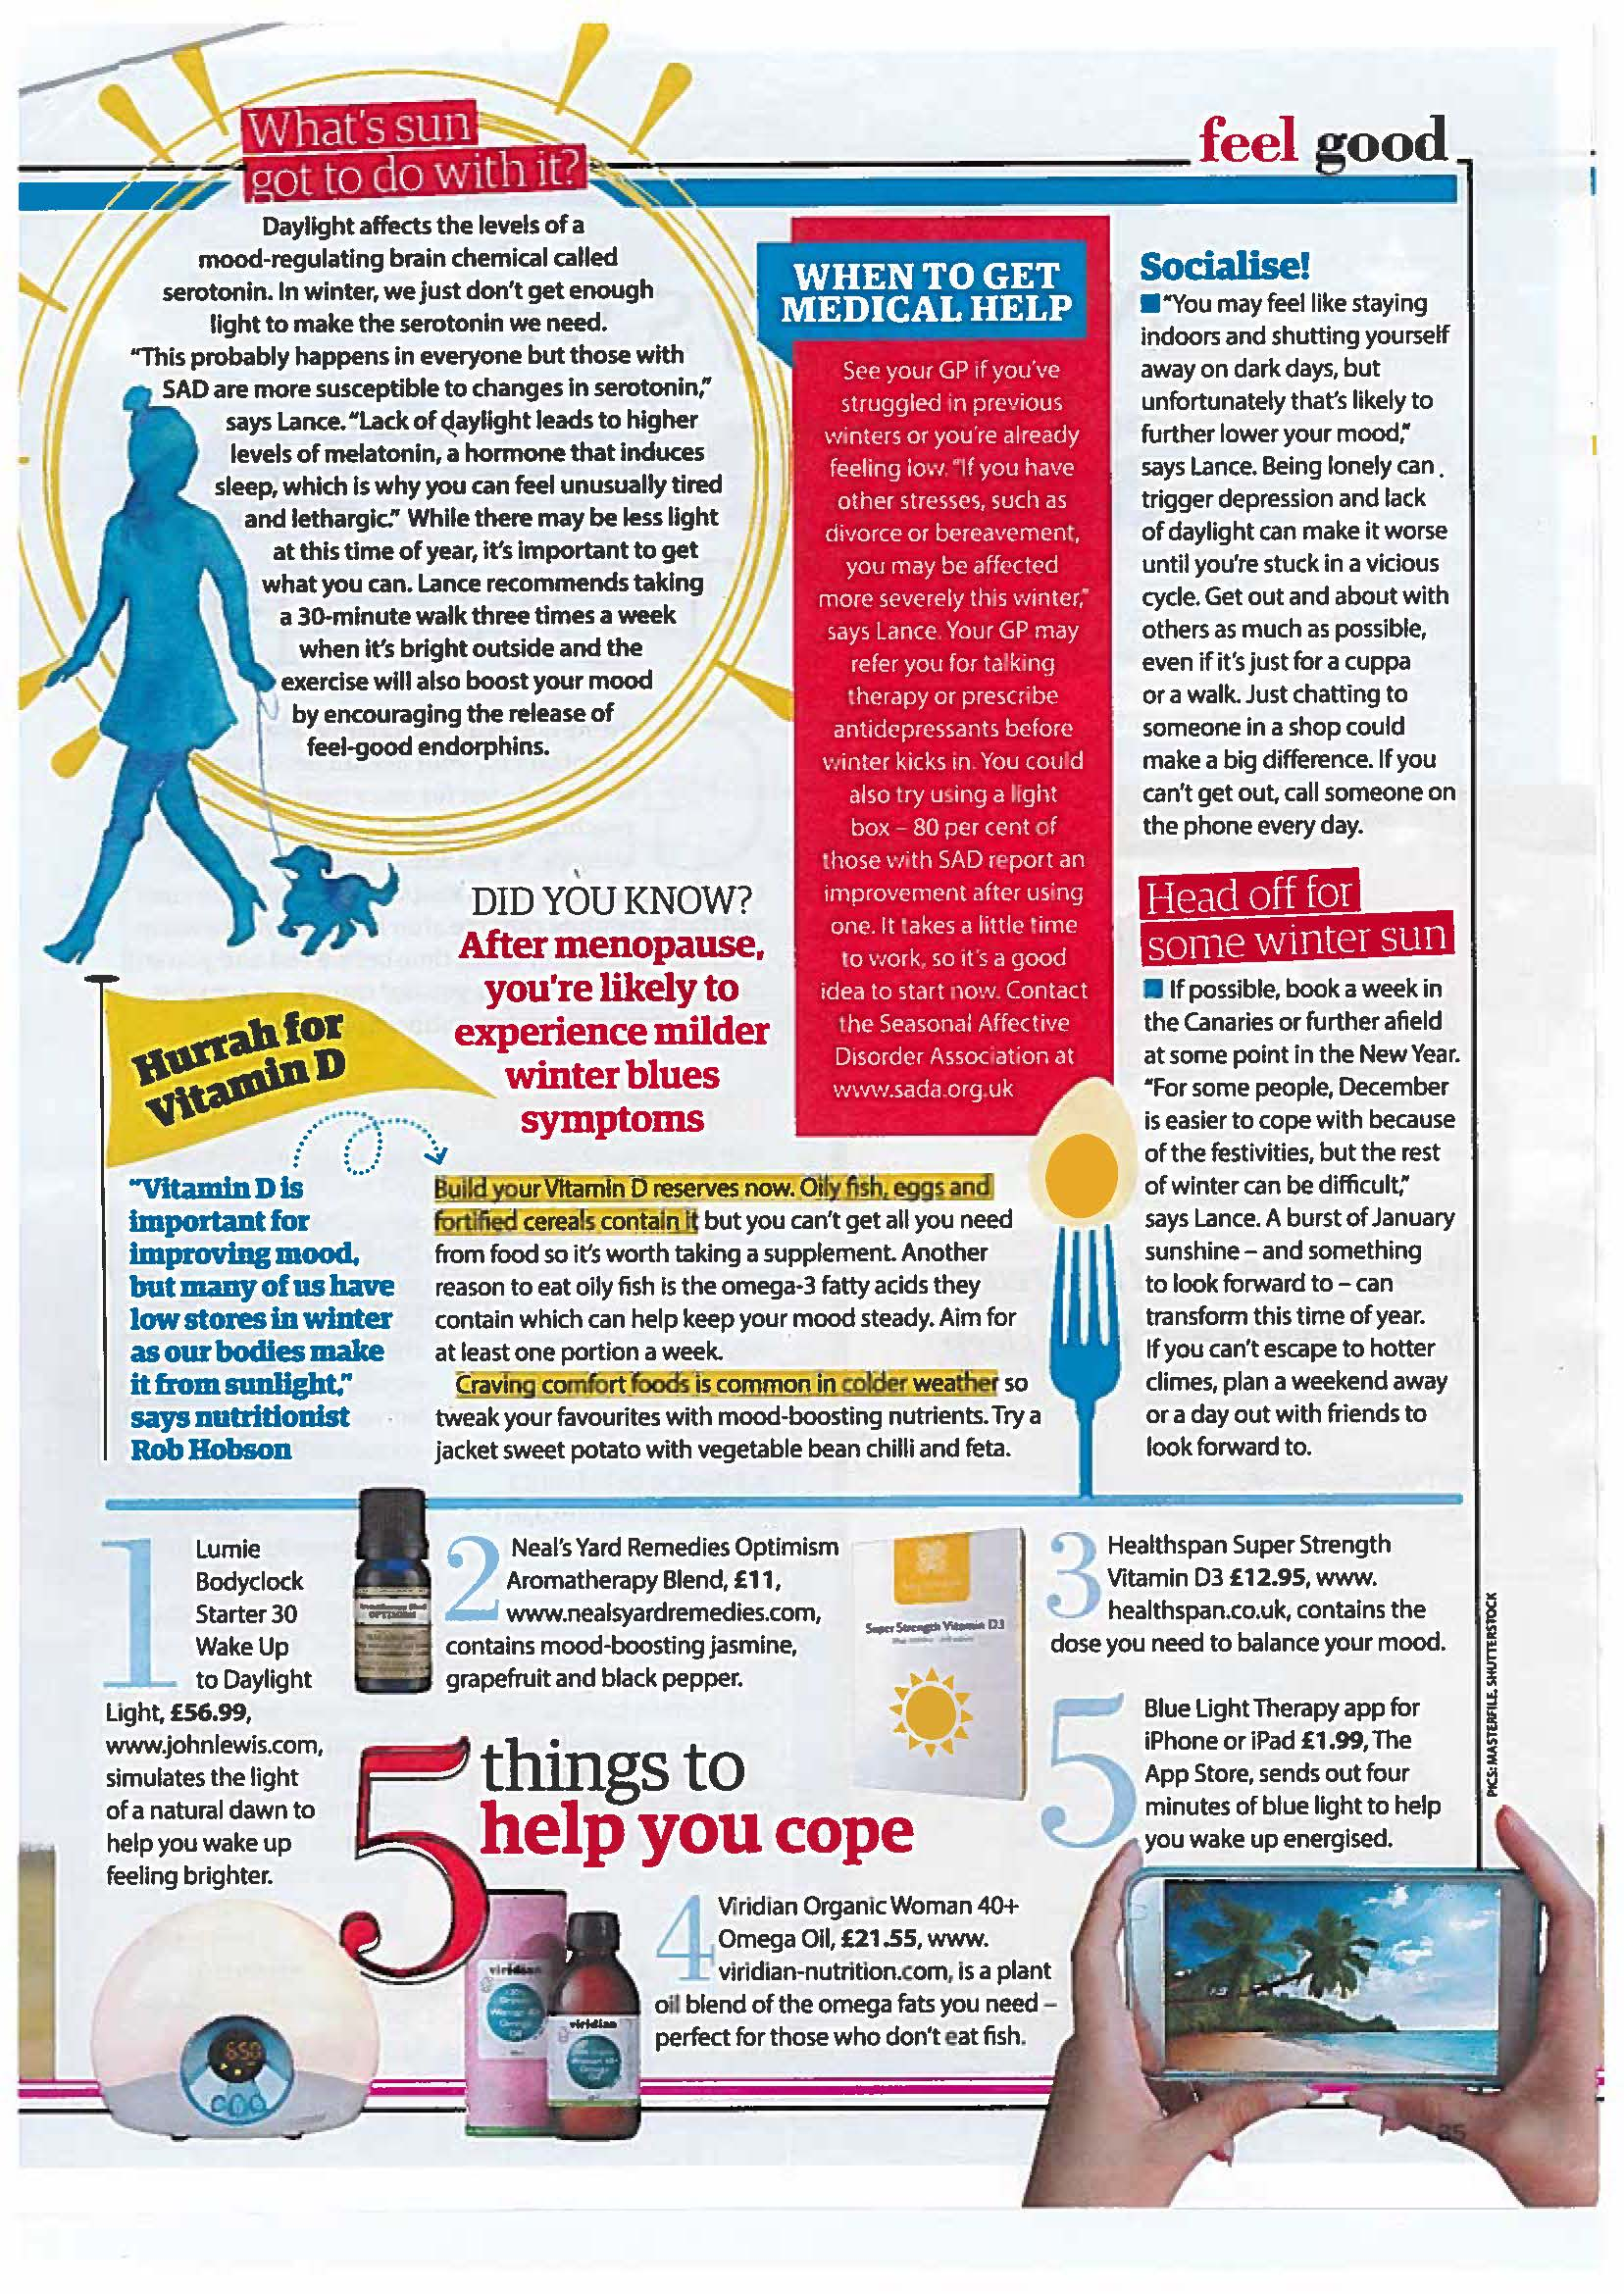 Viridian's Organic Woman 40+ Oil appears in Yours magazine